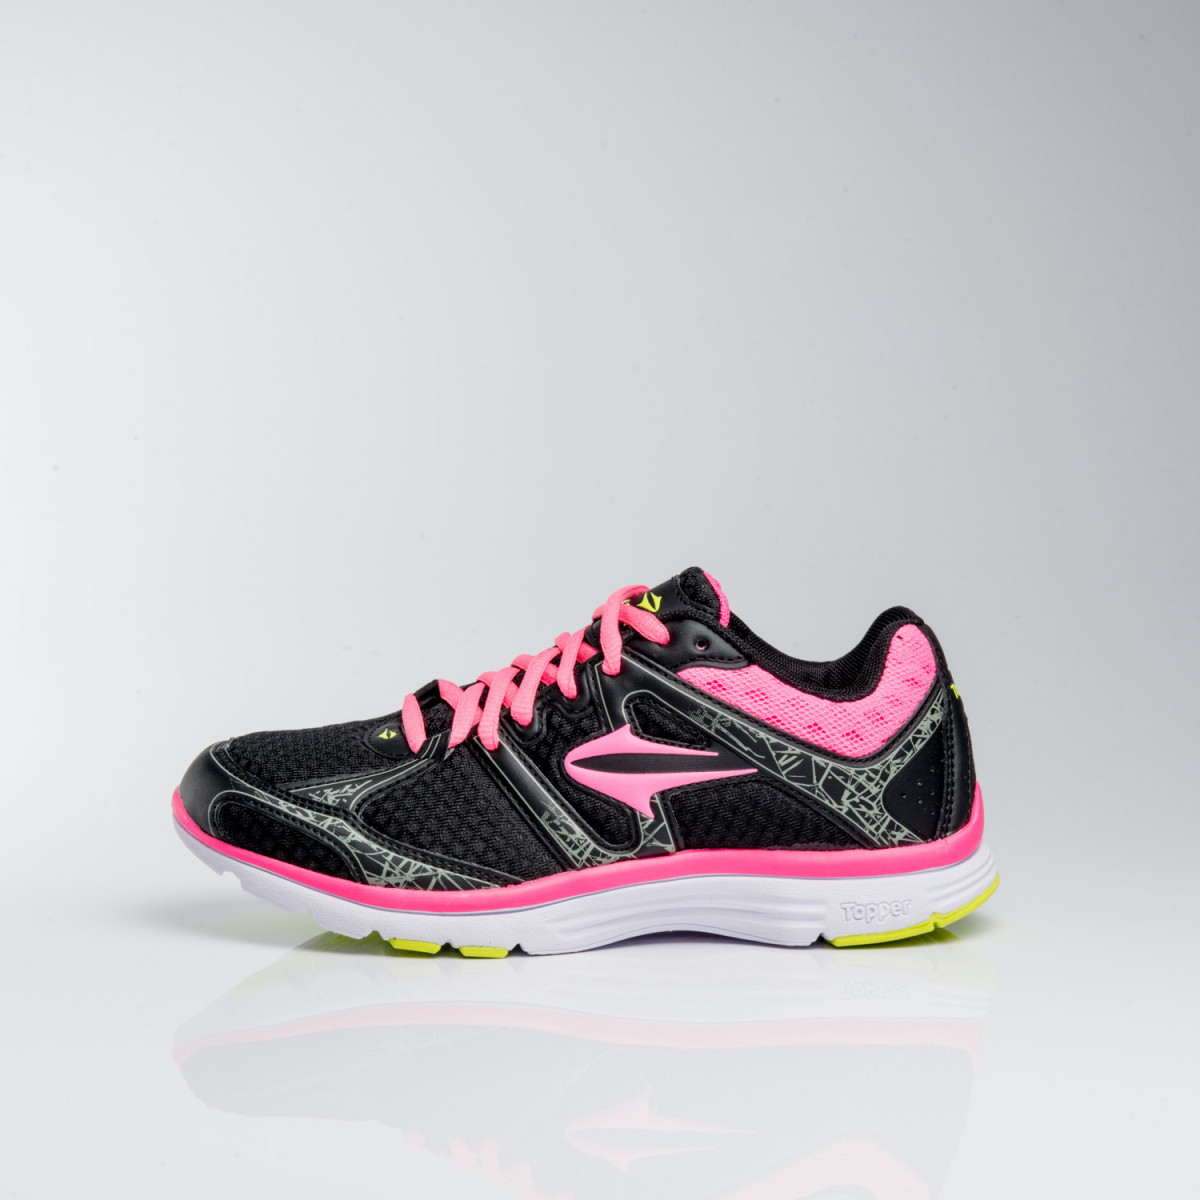 Zapatillas Topper Lady Treno